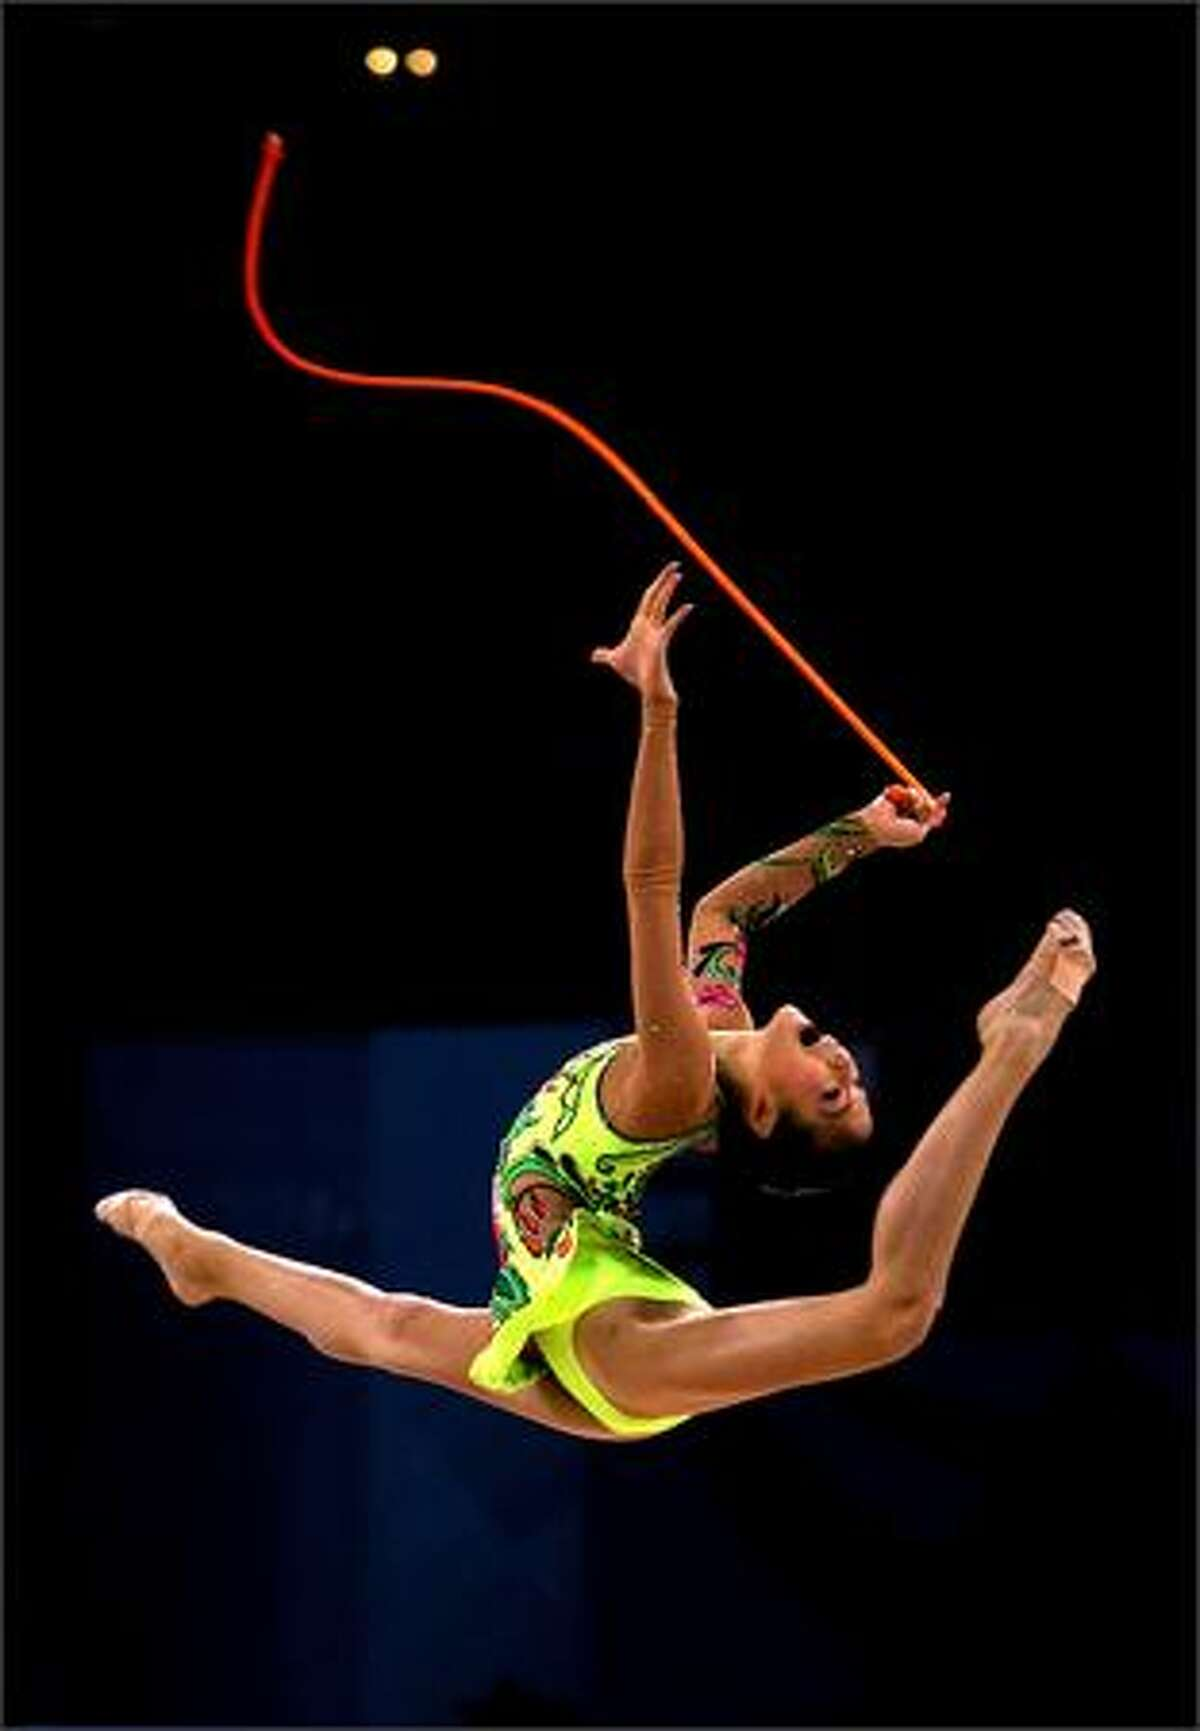 Shin Soo Ji of South Korea performs with the rope during the qualification competition of the